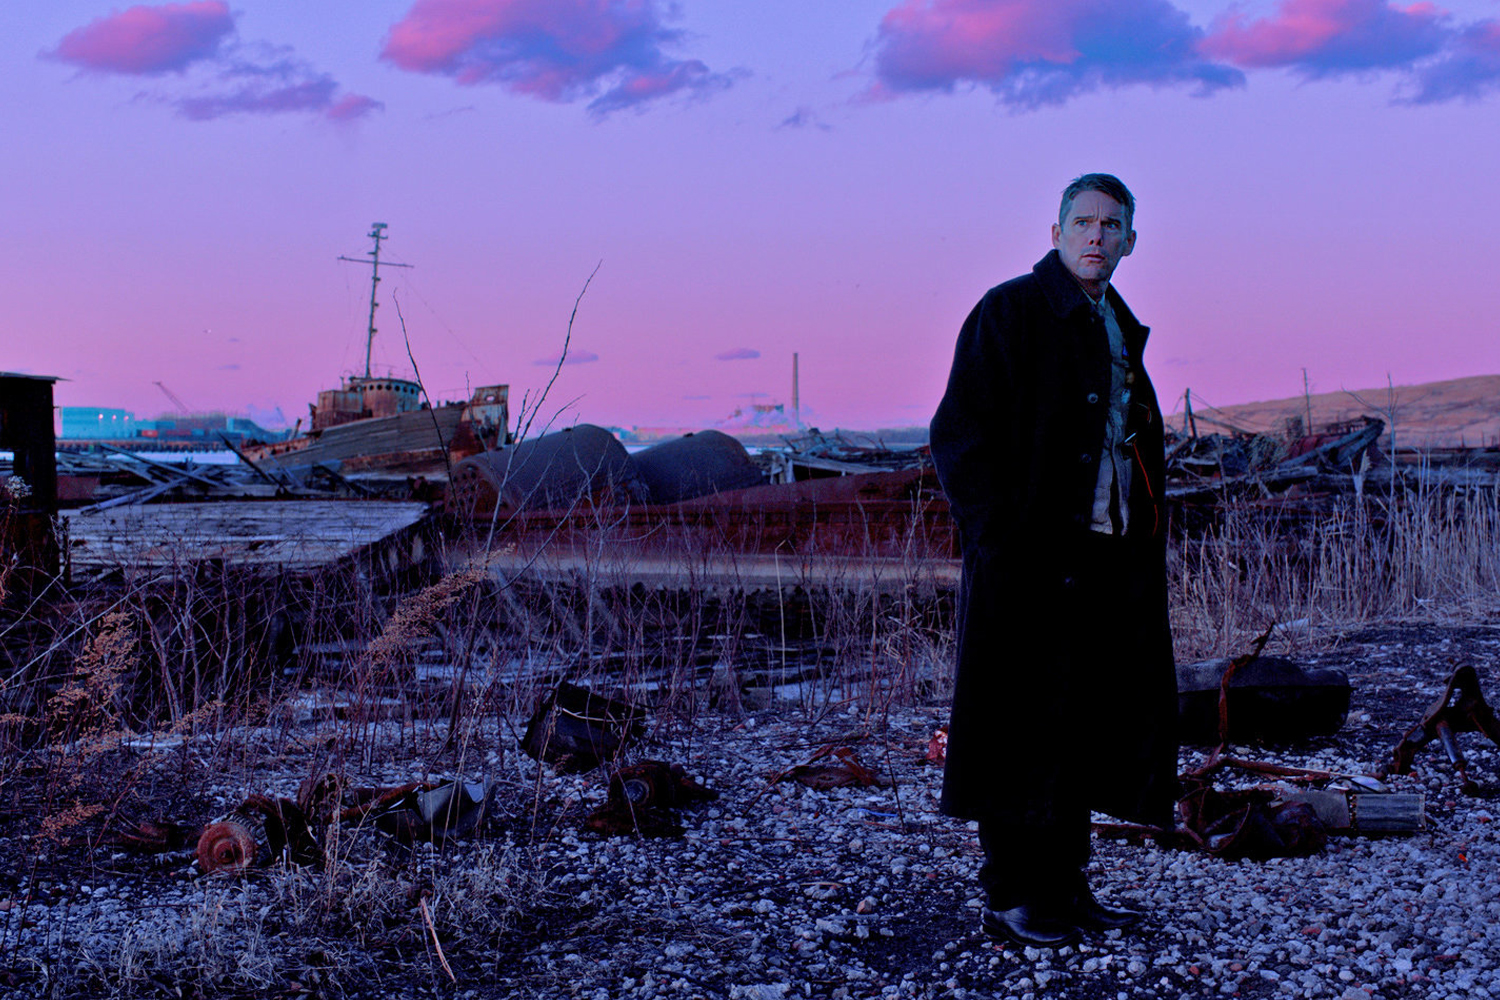 First Reformed - Paul Schrader's best film in years, First Reformed stars the perennially underrated Ethan Hawke in a masterful performance as a former military chaplain mourning the death of his son, tasked with harboring an explosive secret. First Reformed touches on heavy themes with sensitivity as well as propulsiveness - a gripping meditation on depression, faith, and in an unlikely turn, the environment.